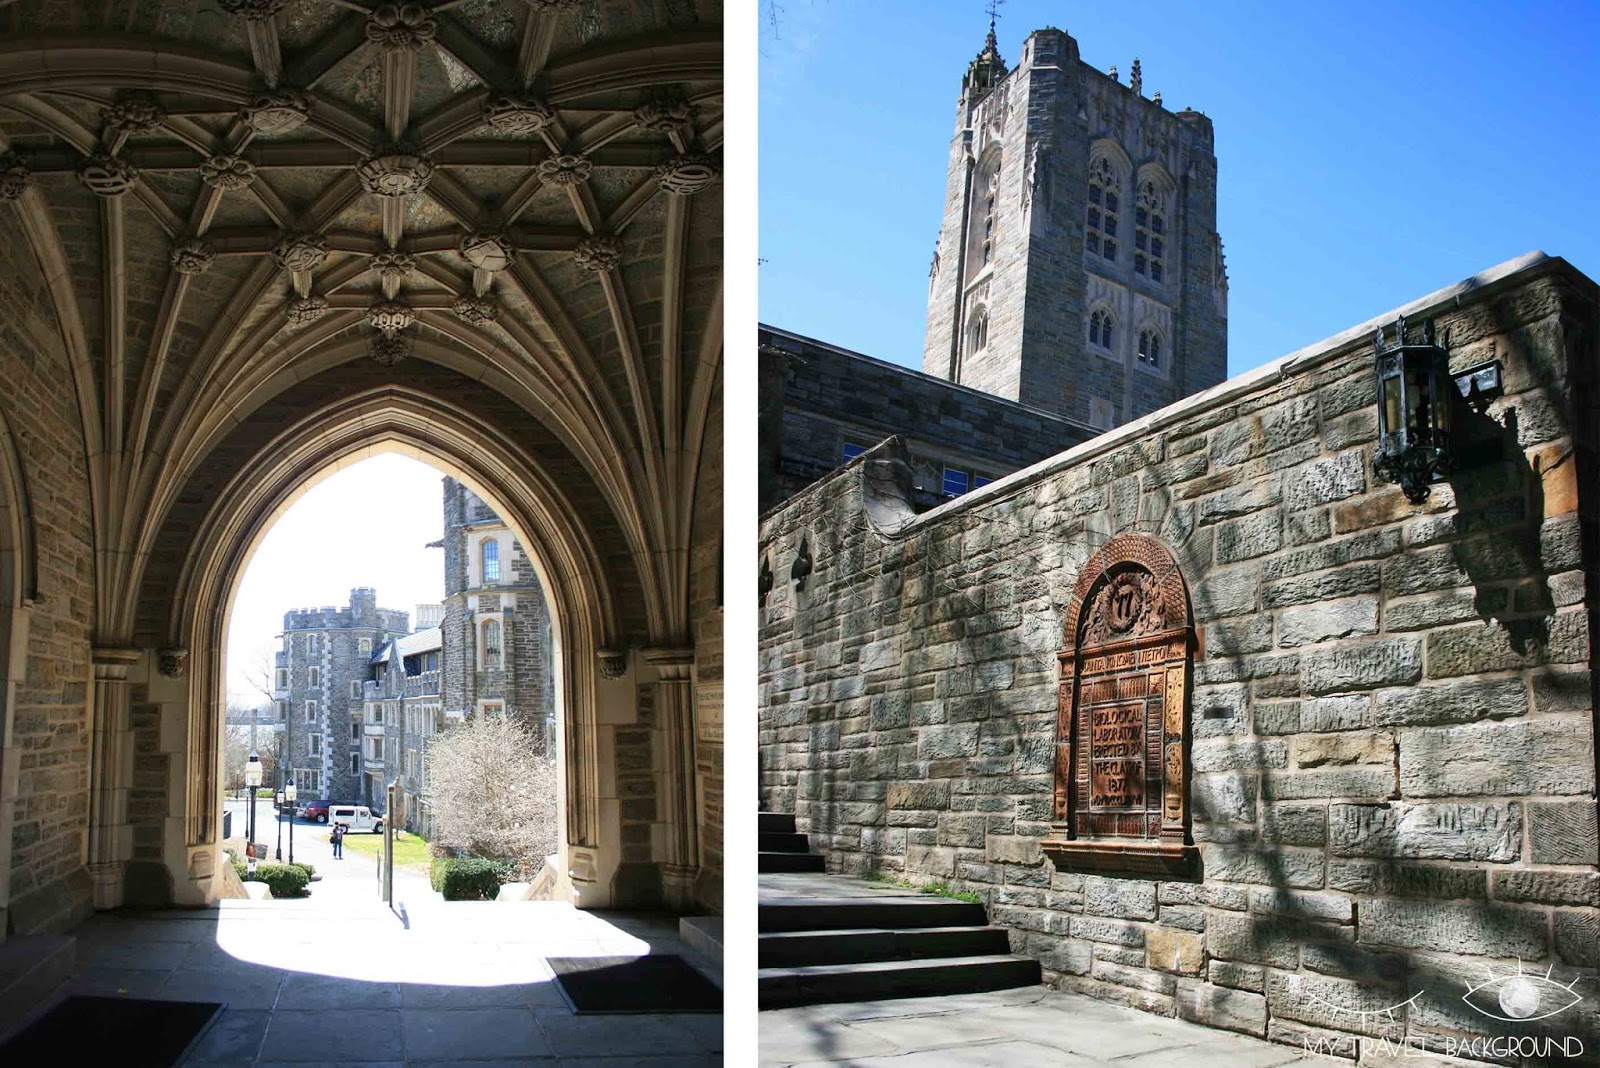 My Travel Background : Les principales universités américaines de la côte Nord-Est - Princeton University